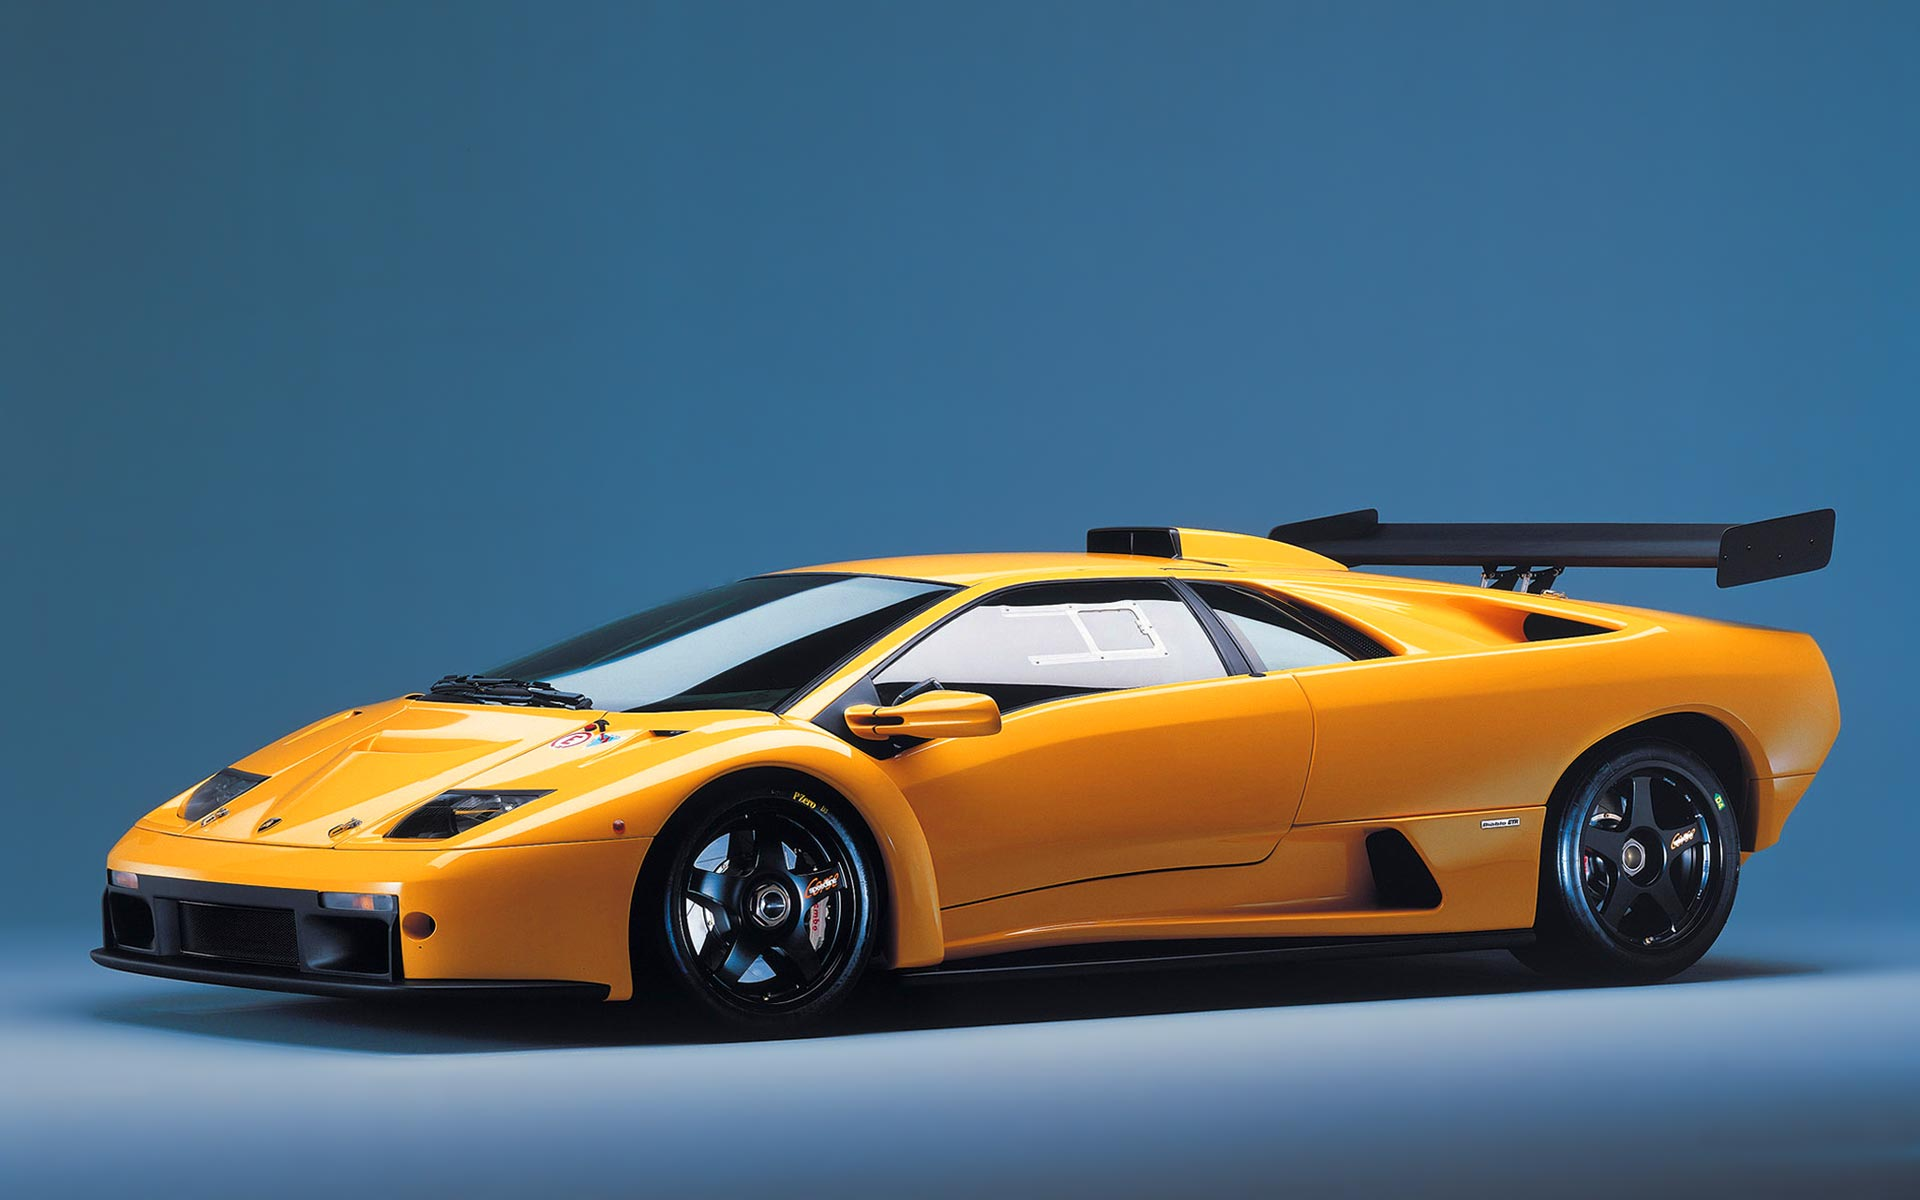 Lamborghini Diablo Backgrounds, Compatible - PC, Mobile, Gadgets| 1920x1200 px